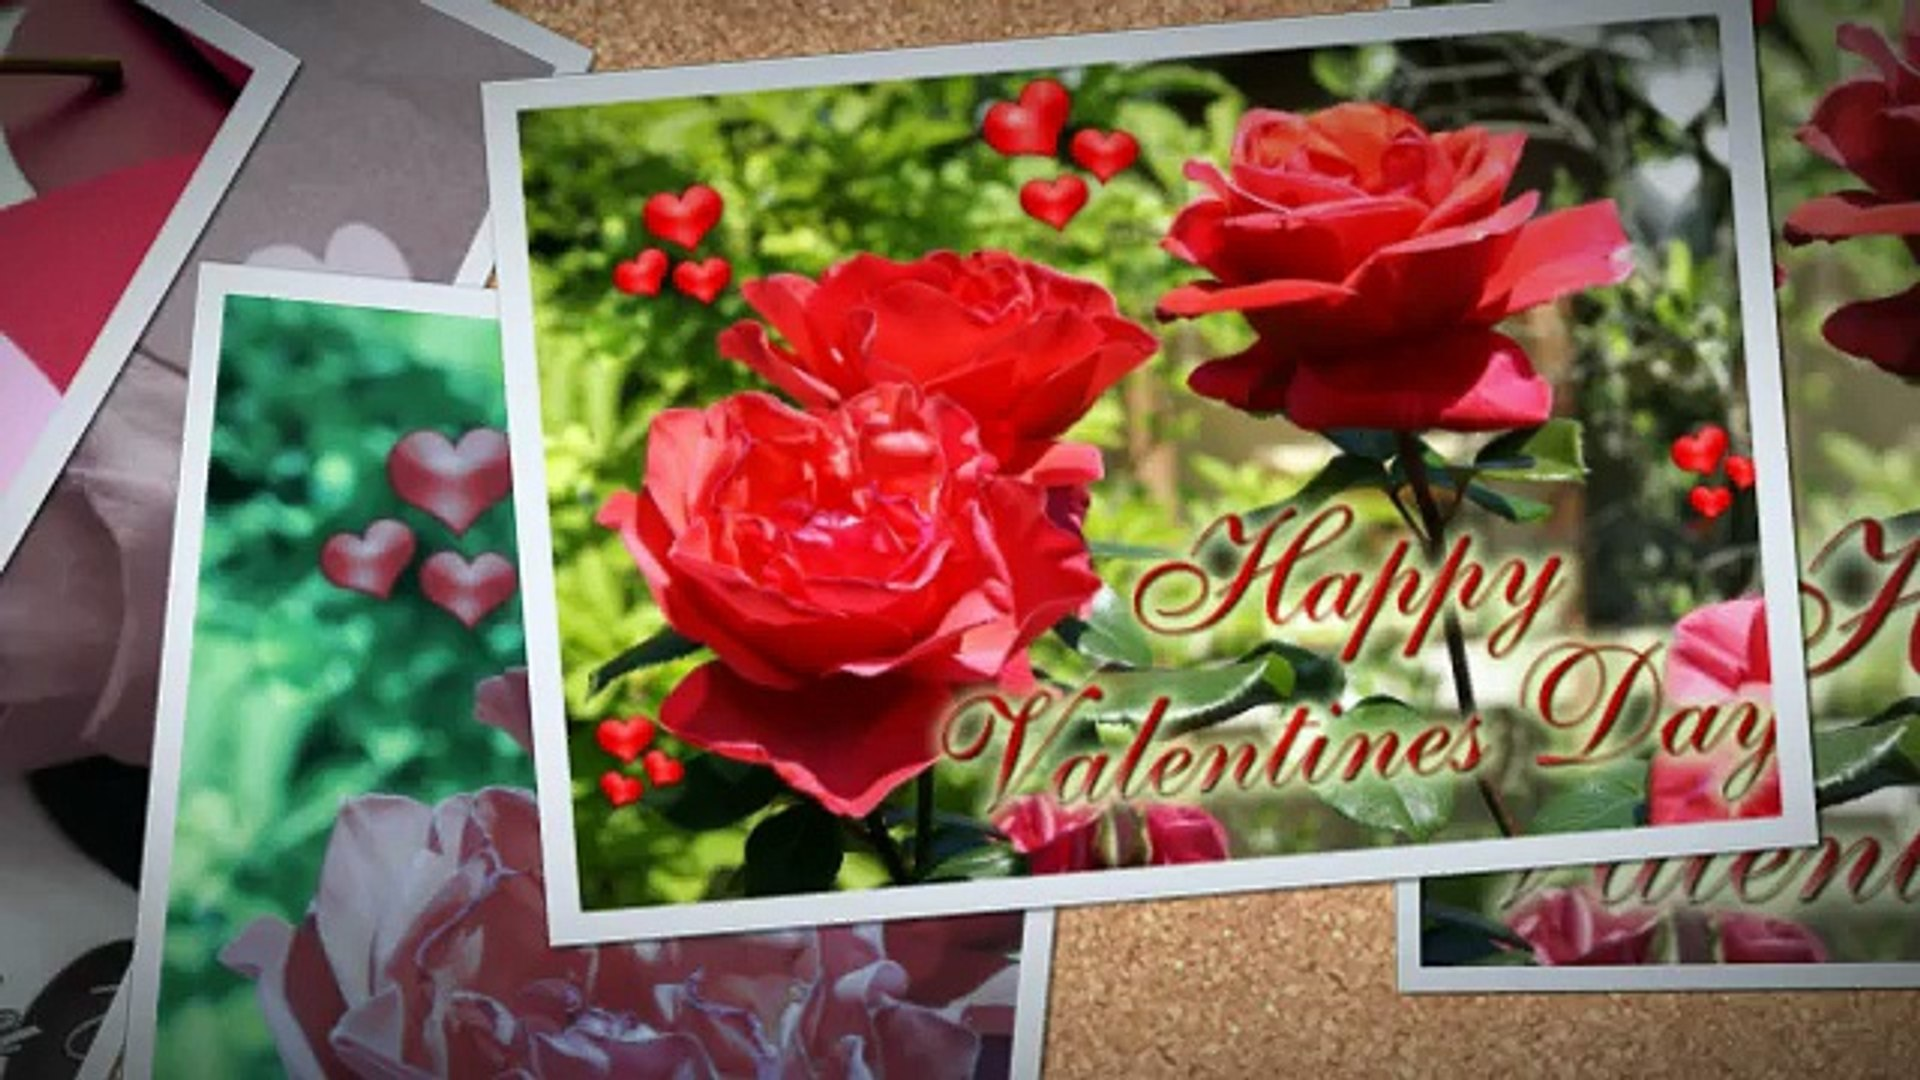 Rose Day Video, Sms, Quotes Wallpapers - Valentine's Day , HD Wallpaper & Backgrounds